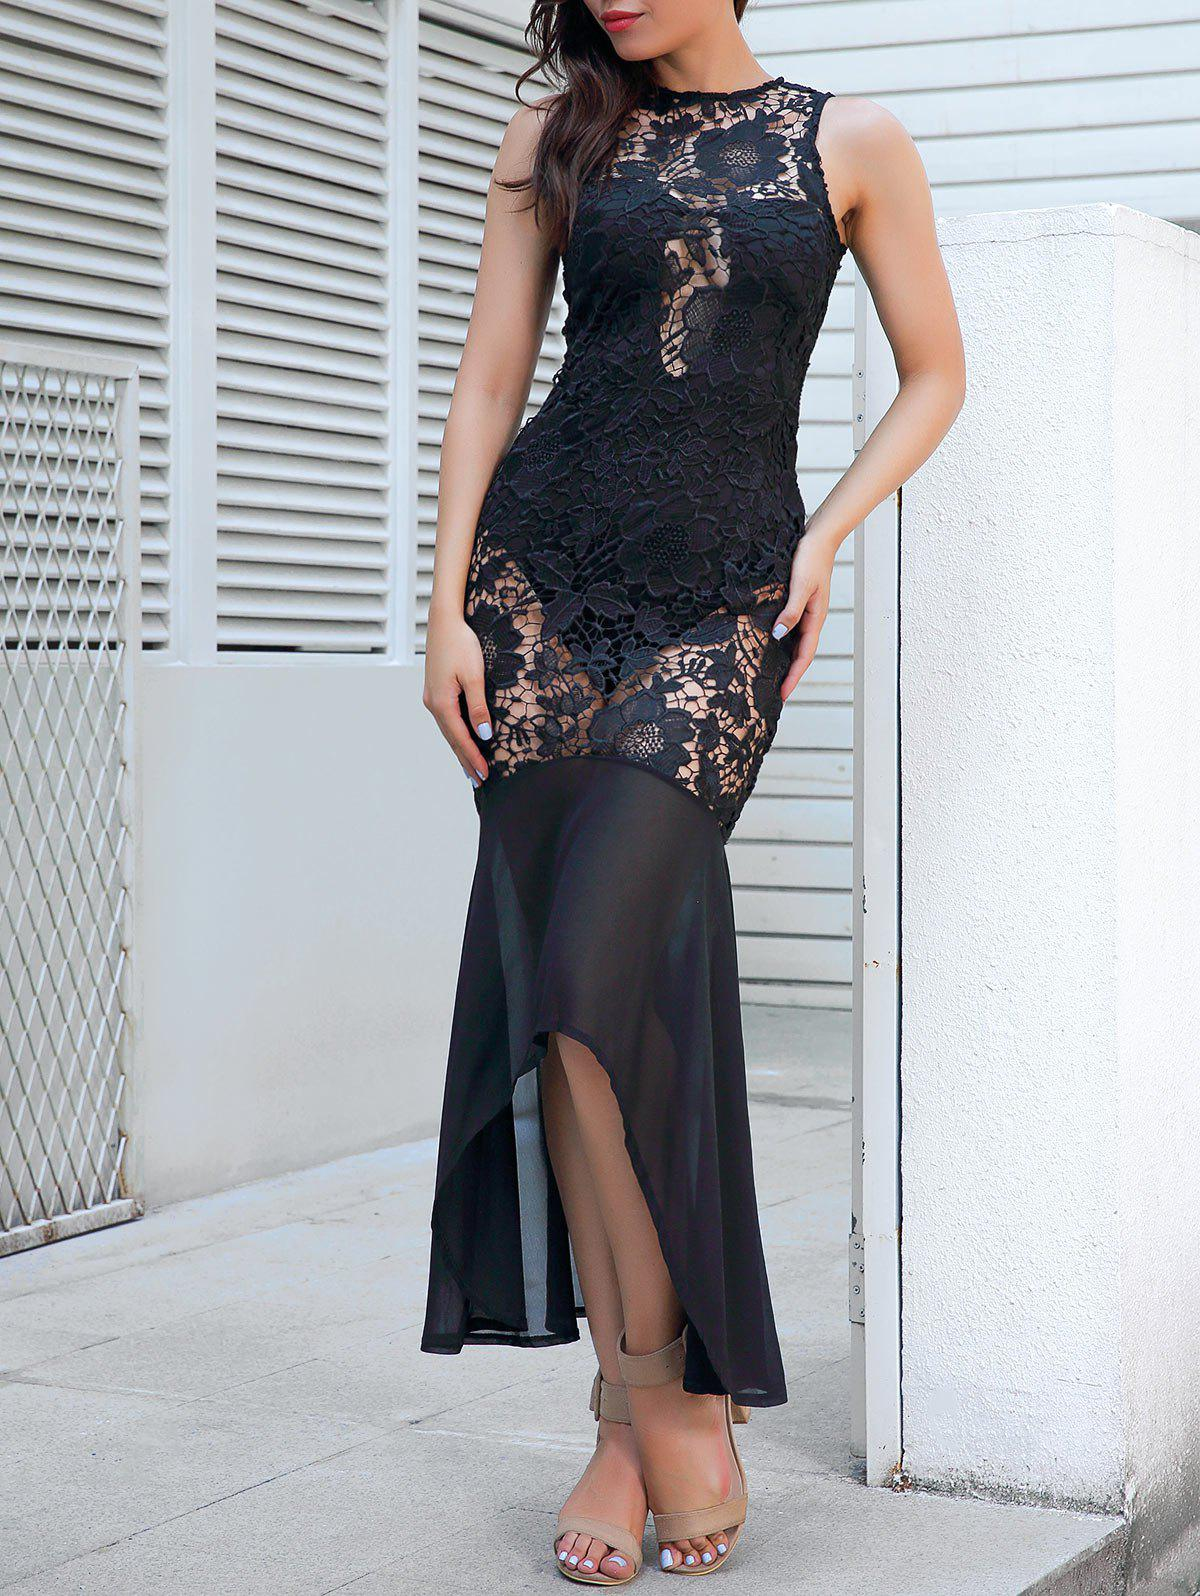 Sleeveless Sheer Lace Bodycon Maxi Dress - BLACK M